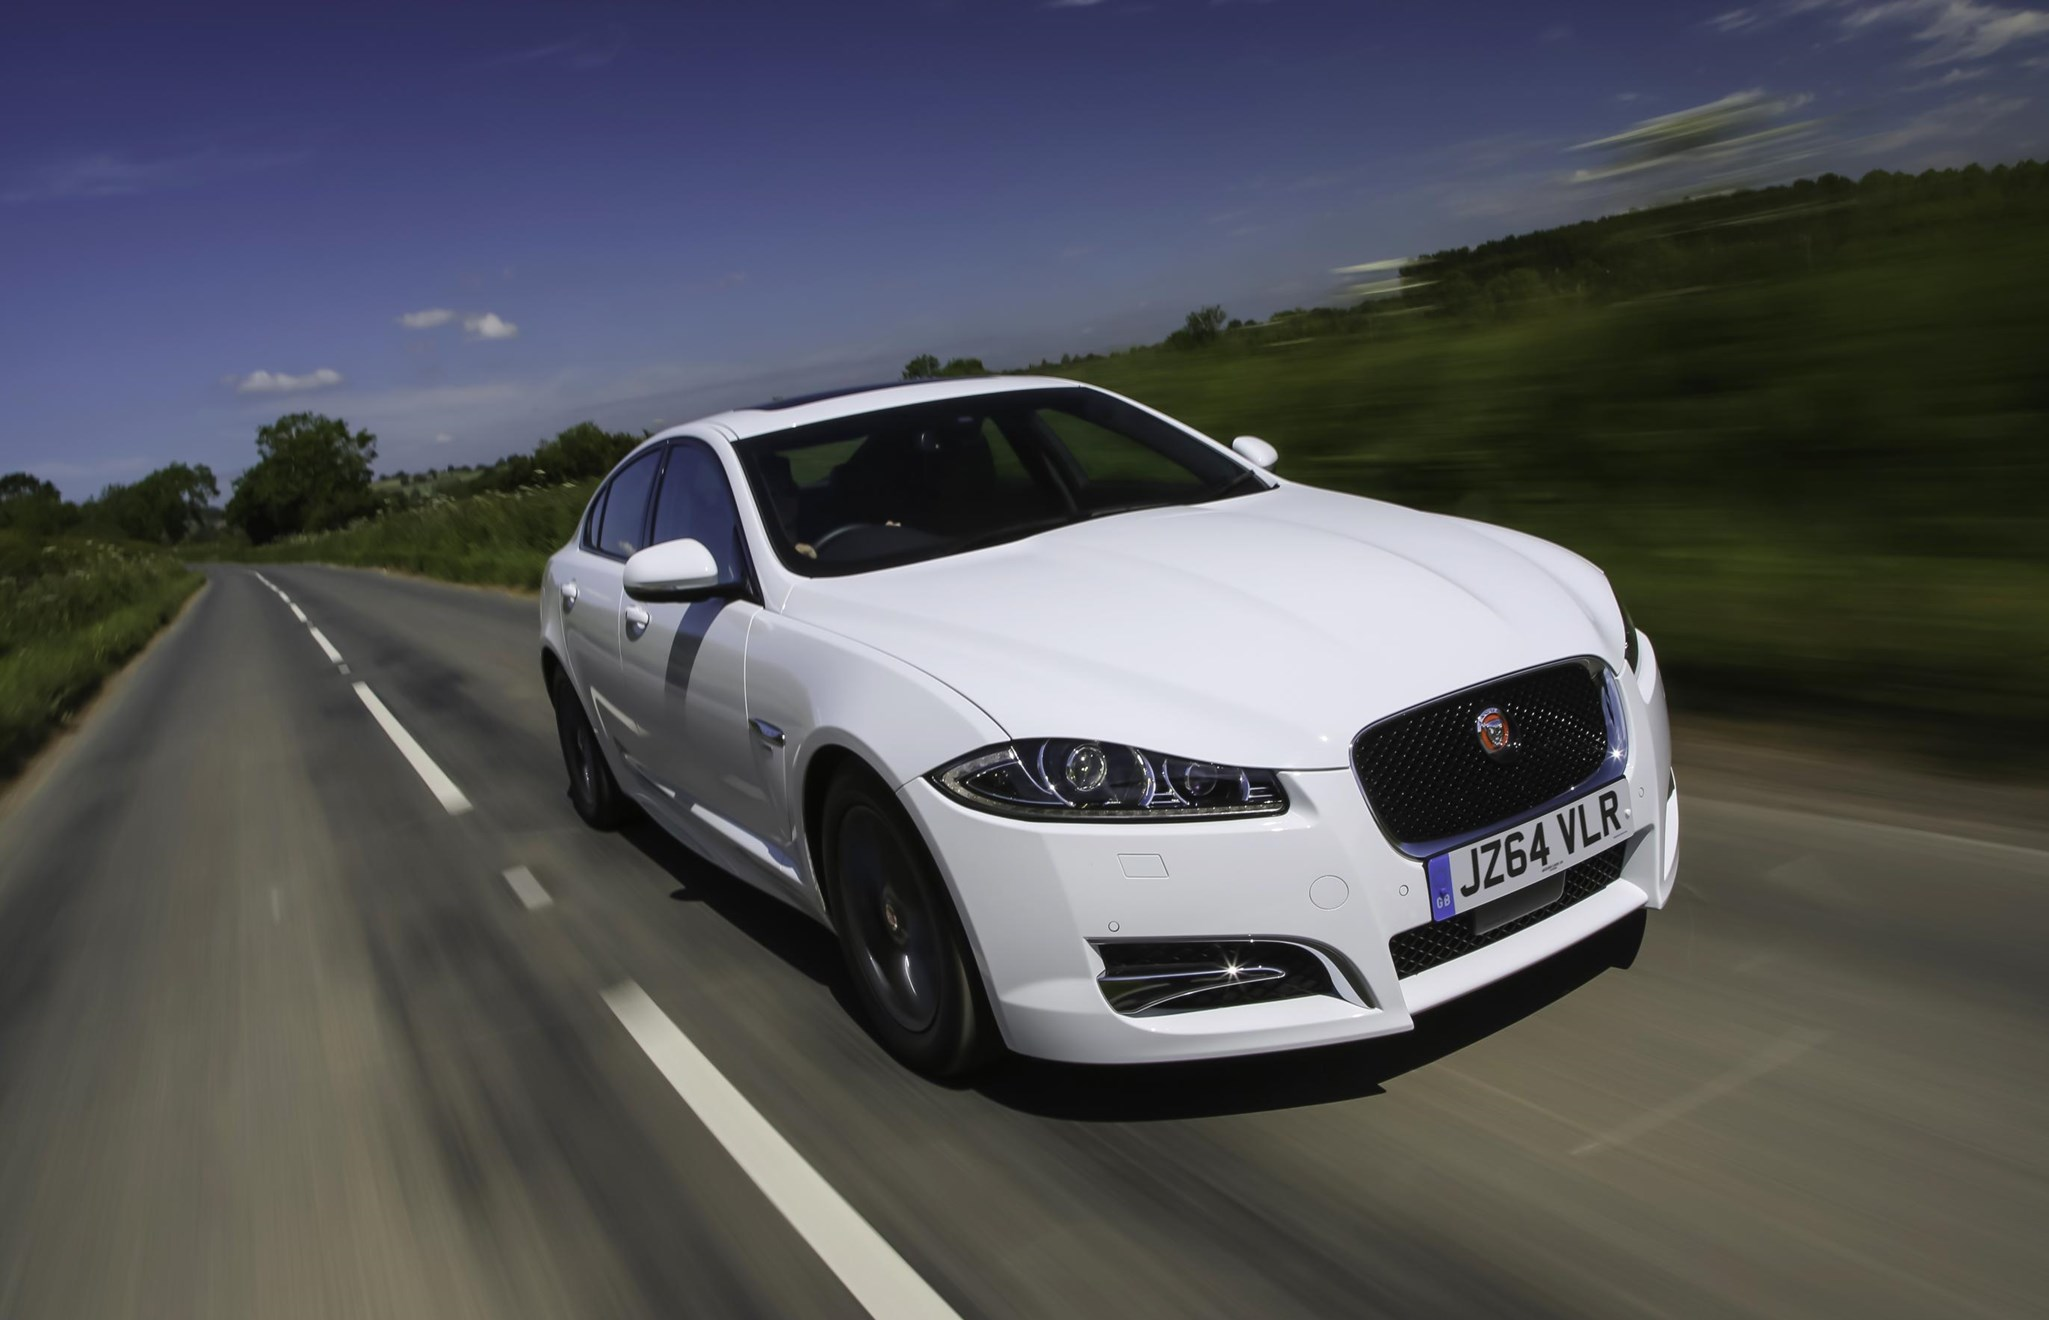 cars d jaguar xe review r reviews car magazine sport by